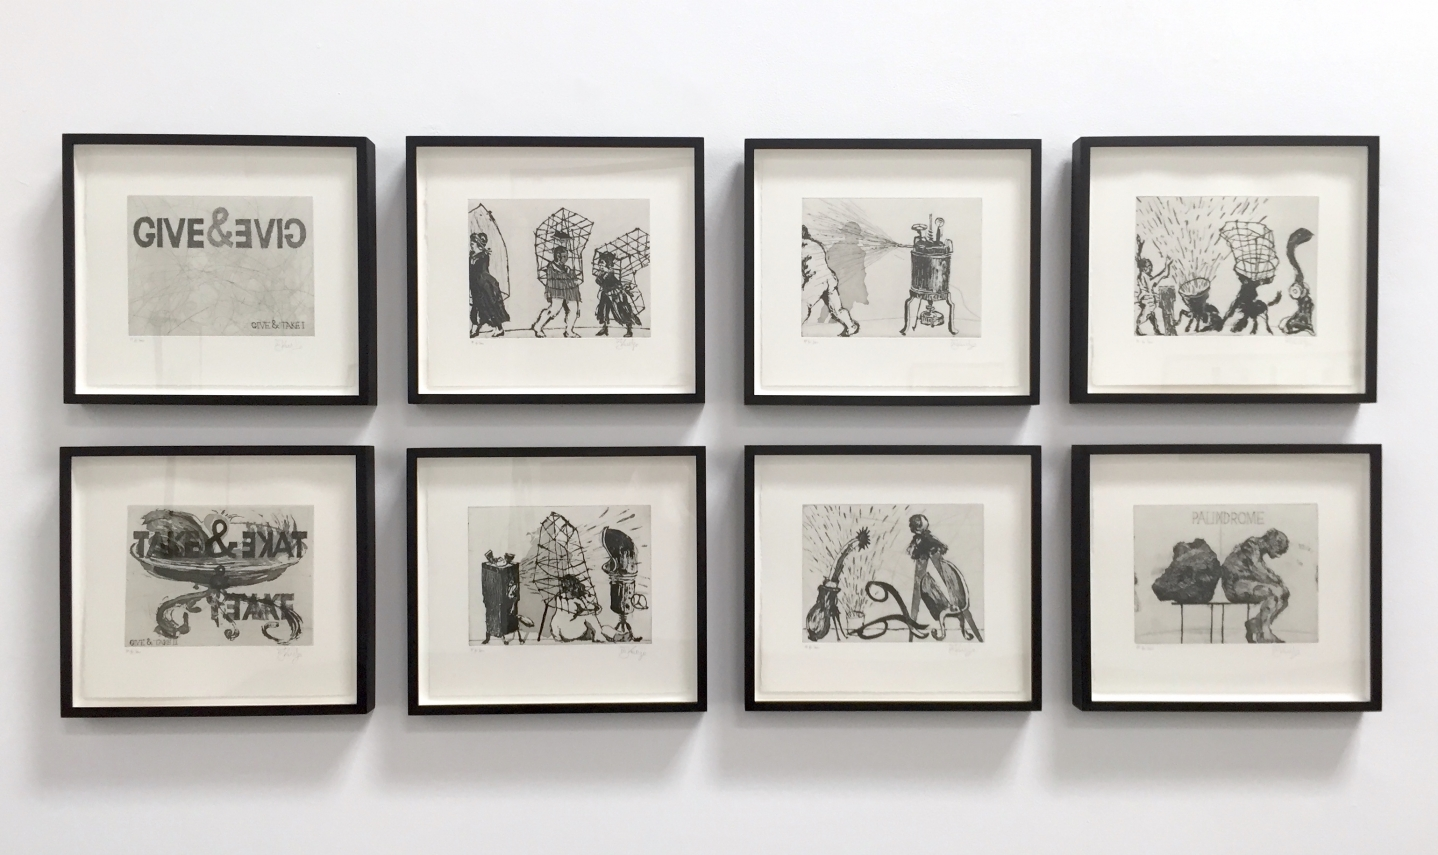 William Kentridge, Give & Take Series, Etching